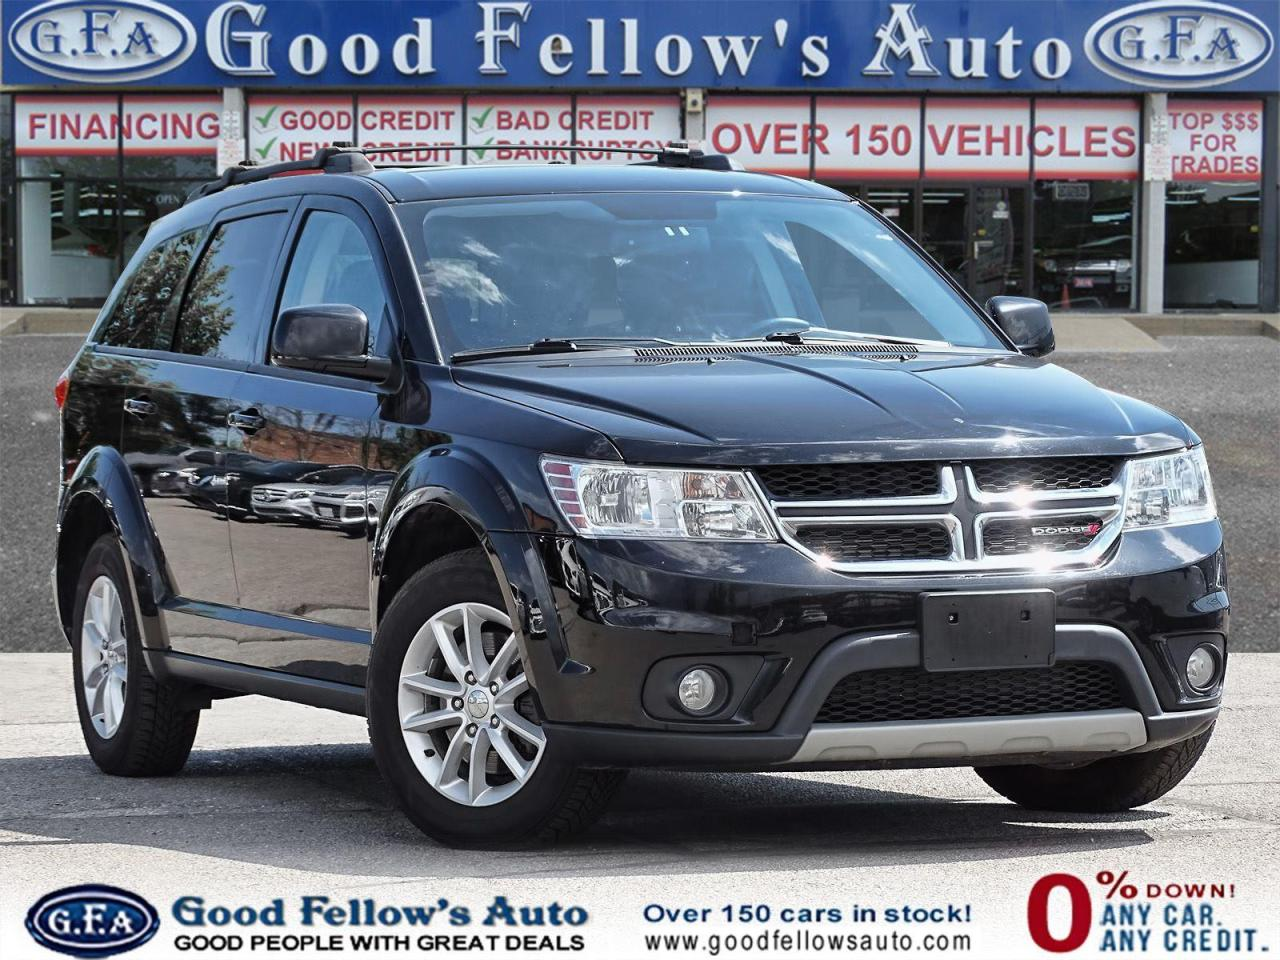 used 2016 Dodge Journey car, priced at $12,648